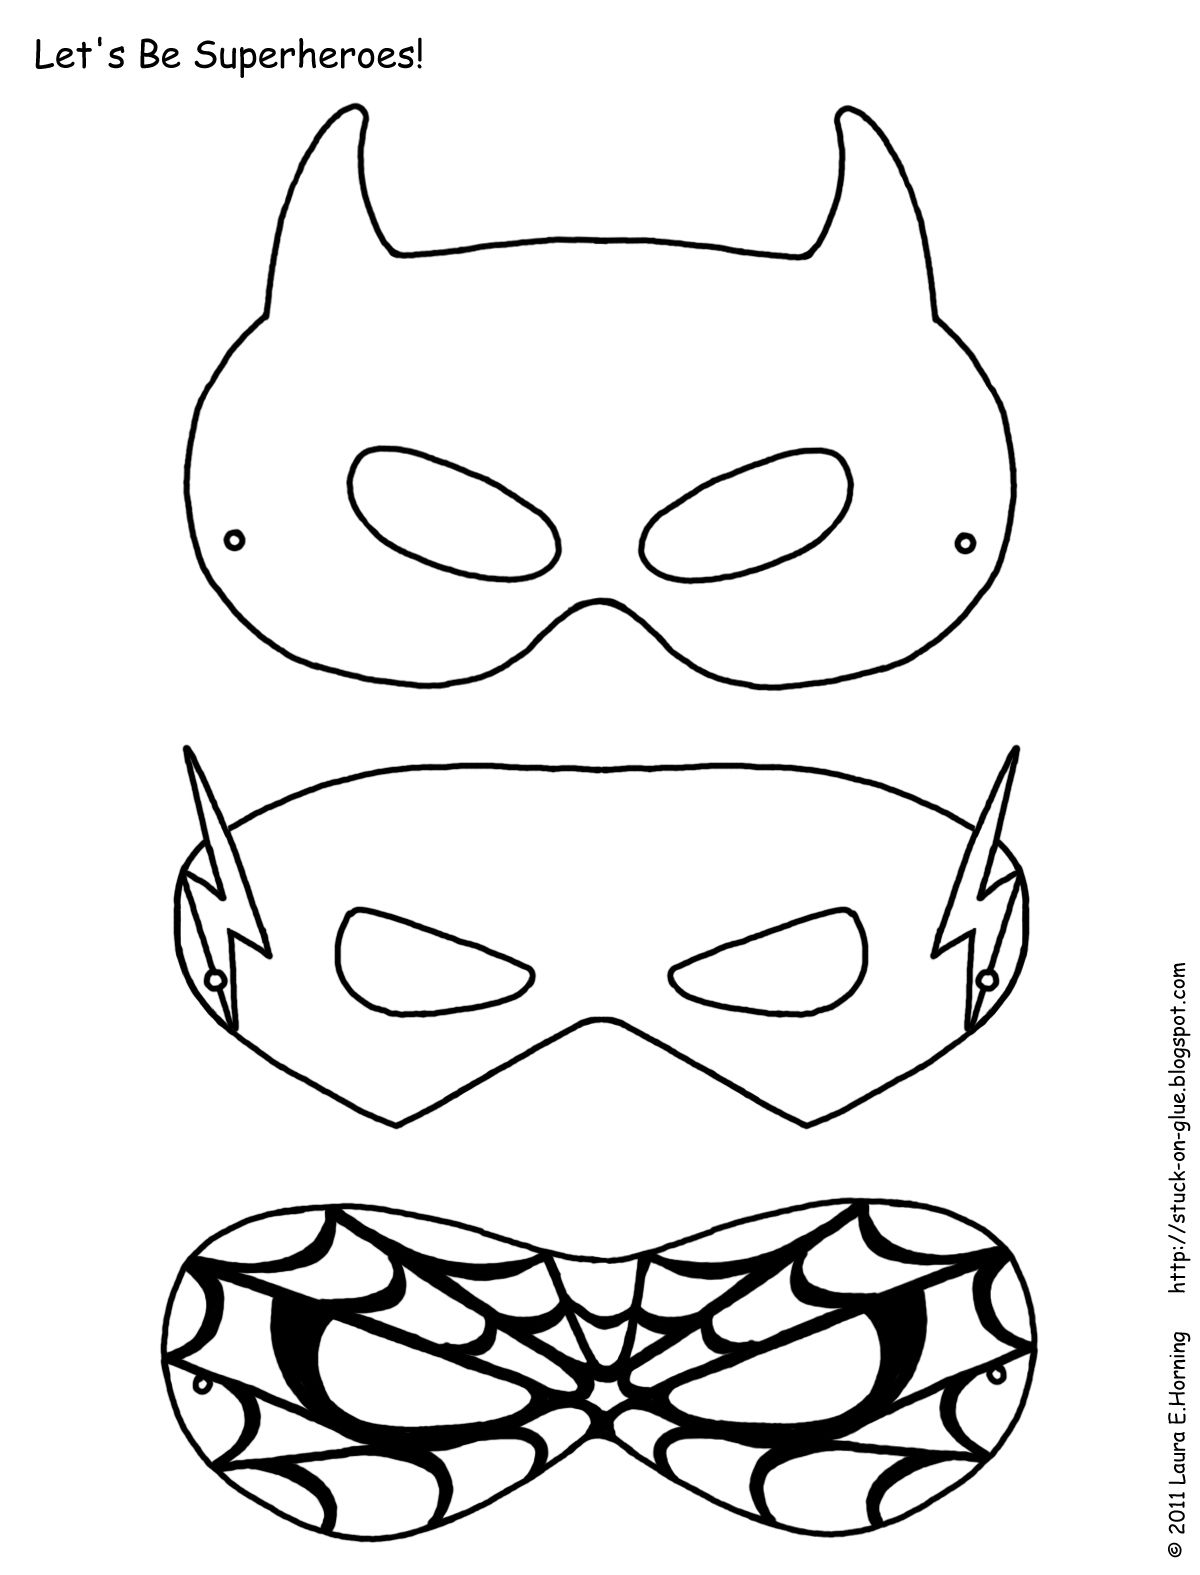 Superhero activities FREE superhero masks to color – Free Mask Templates